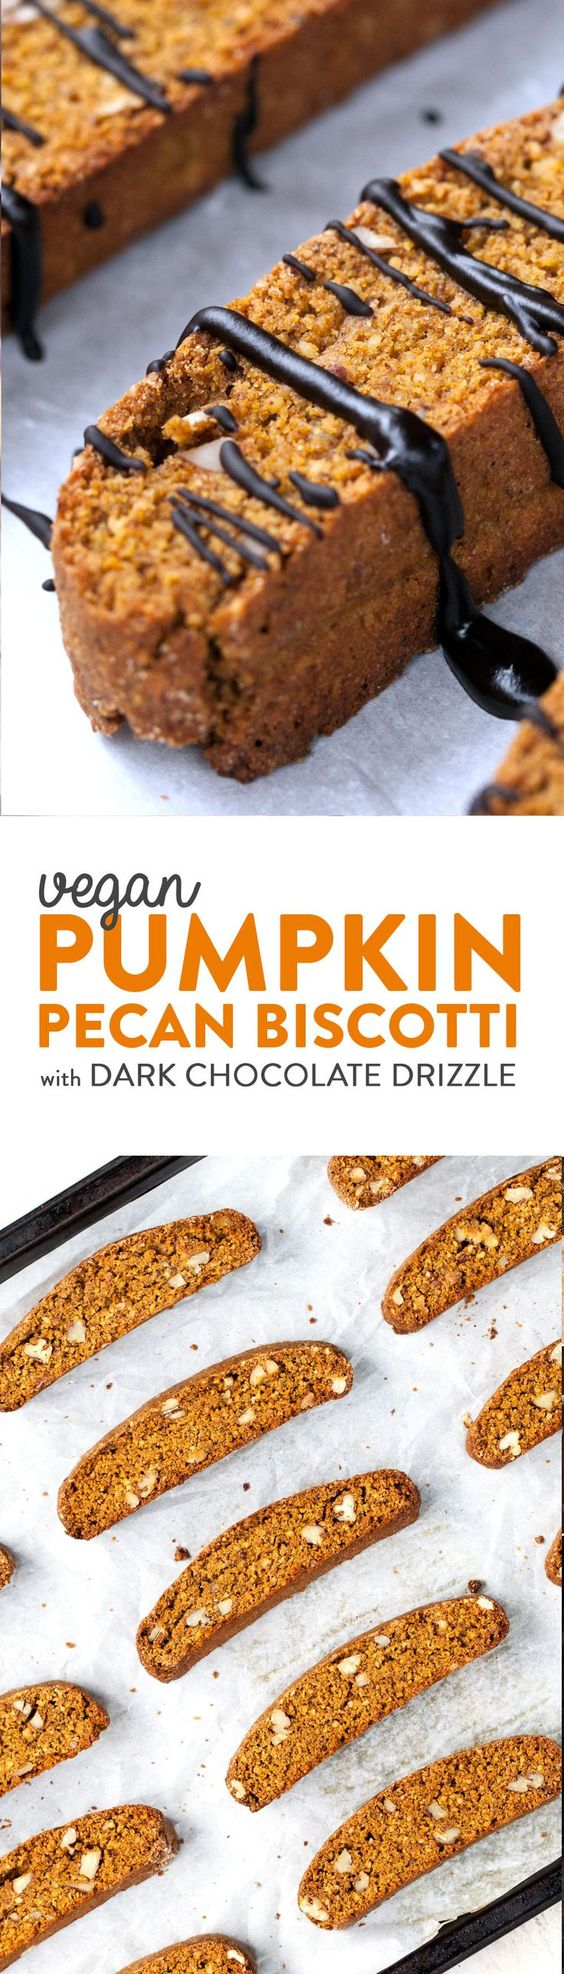 Crisp, crunchy pumpkin pecan biscotti drizzled with dark chocolate. Perfect for dipping into your favorite tea or coffee as a mid-day snack or dessert. Fall flavors at their best! Vegan.